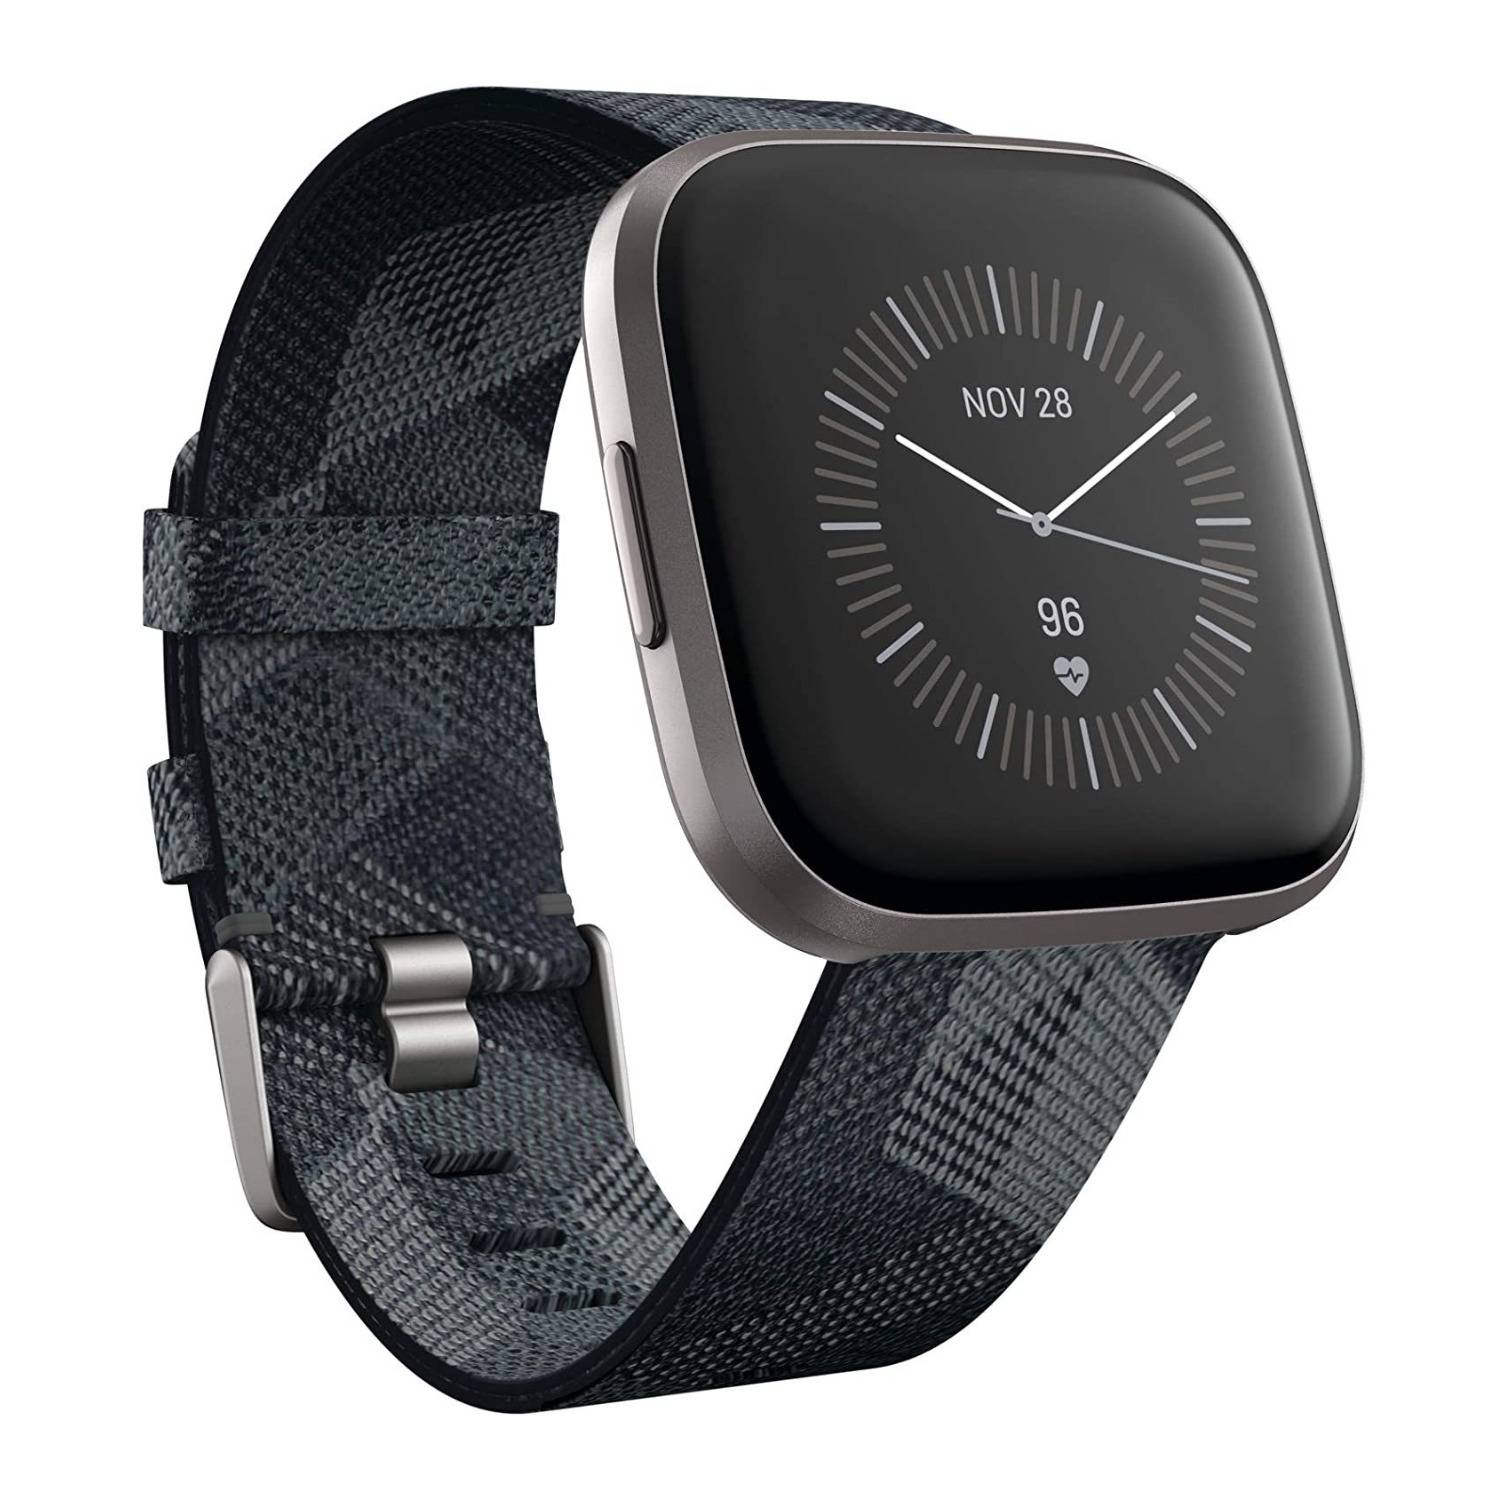 Fitbit Versa 2 Health and Fitness Smartwatch with Heart Rate Monitor (Smoke Woven/Mist Gray, Special Edition)